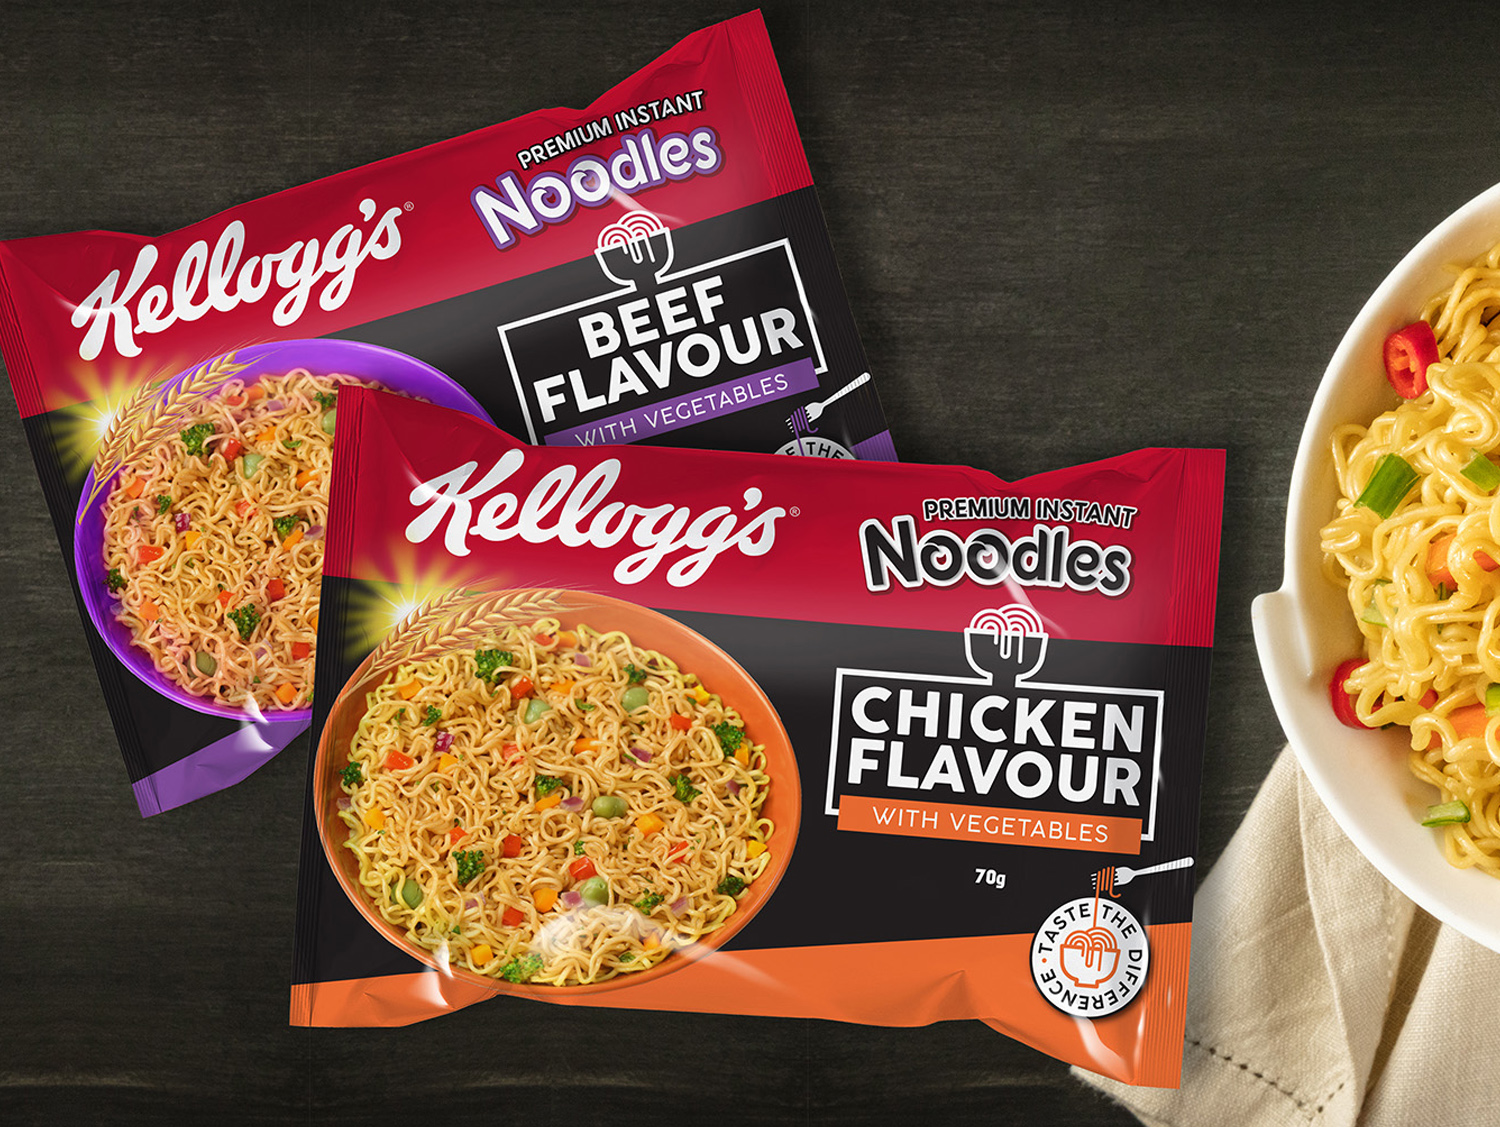 kelloggs-premium-noodles-packaging-design-agent-orange-design-bbq.jpg